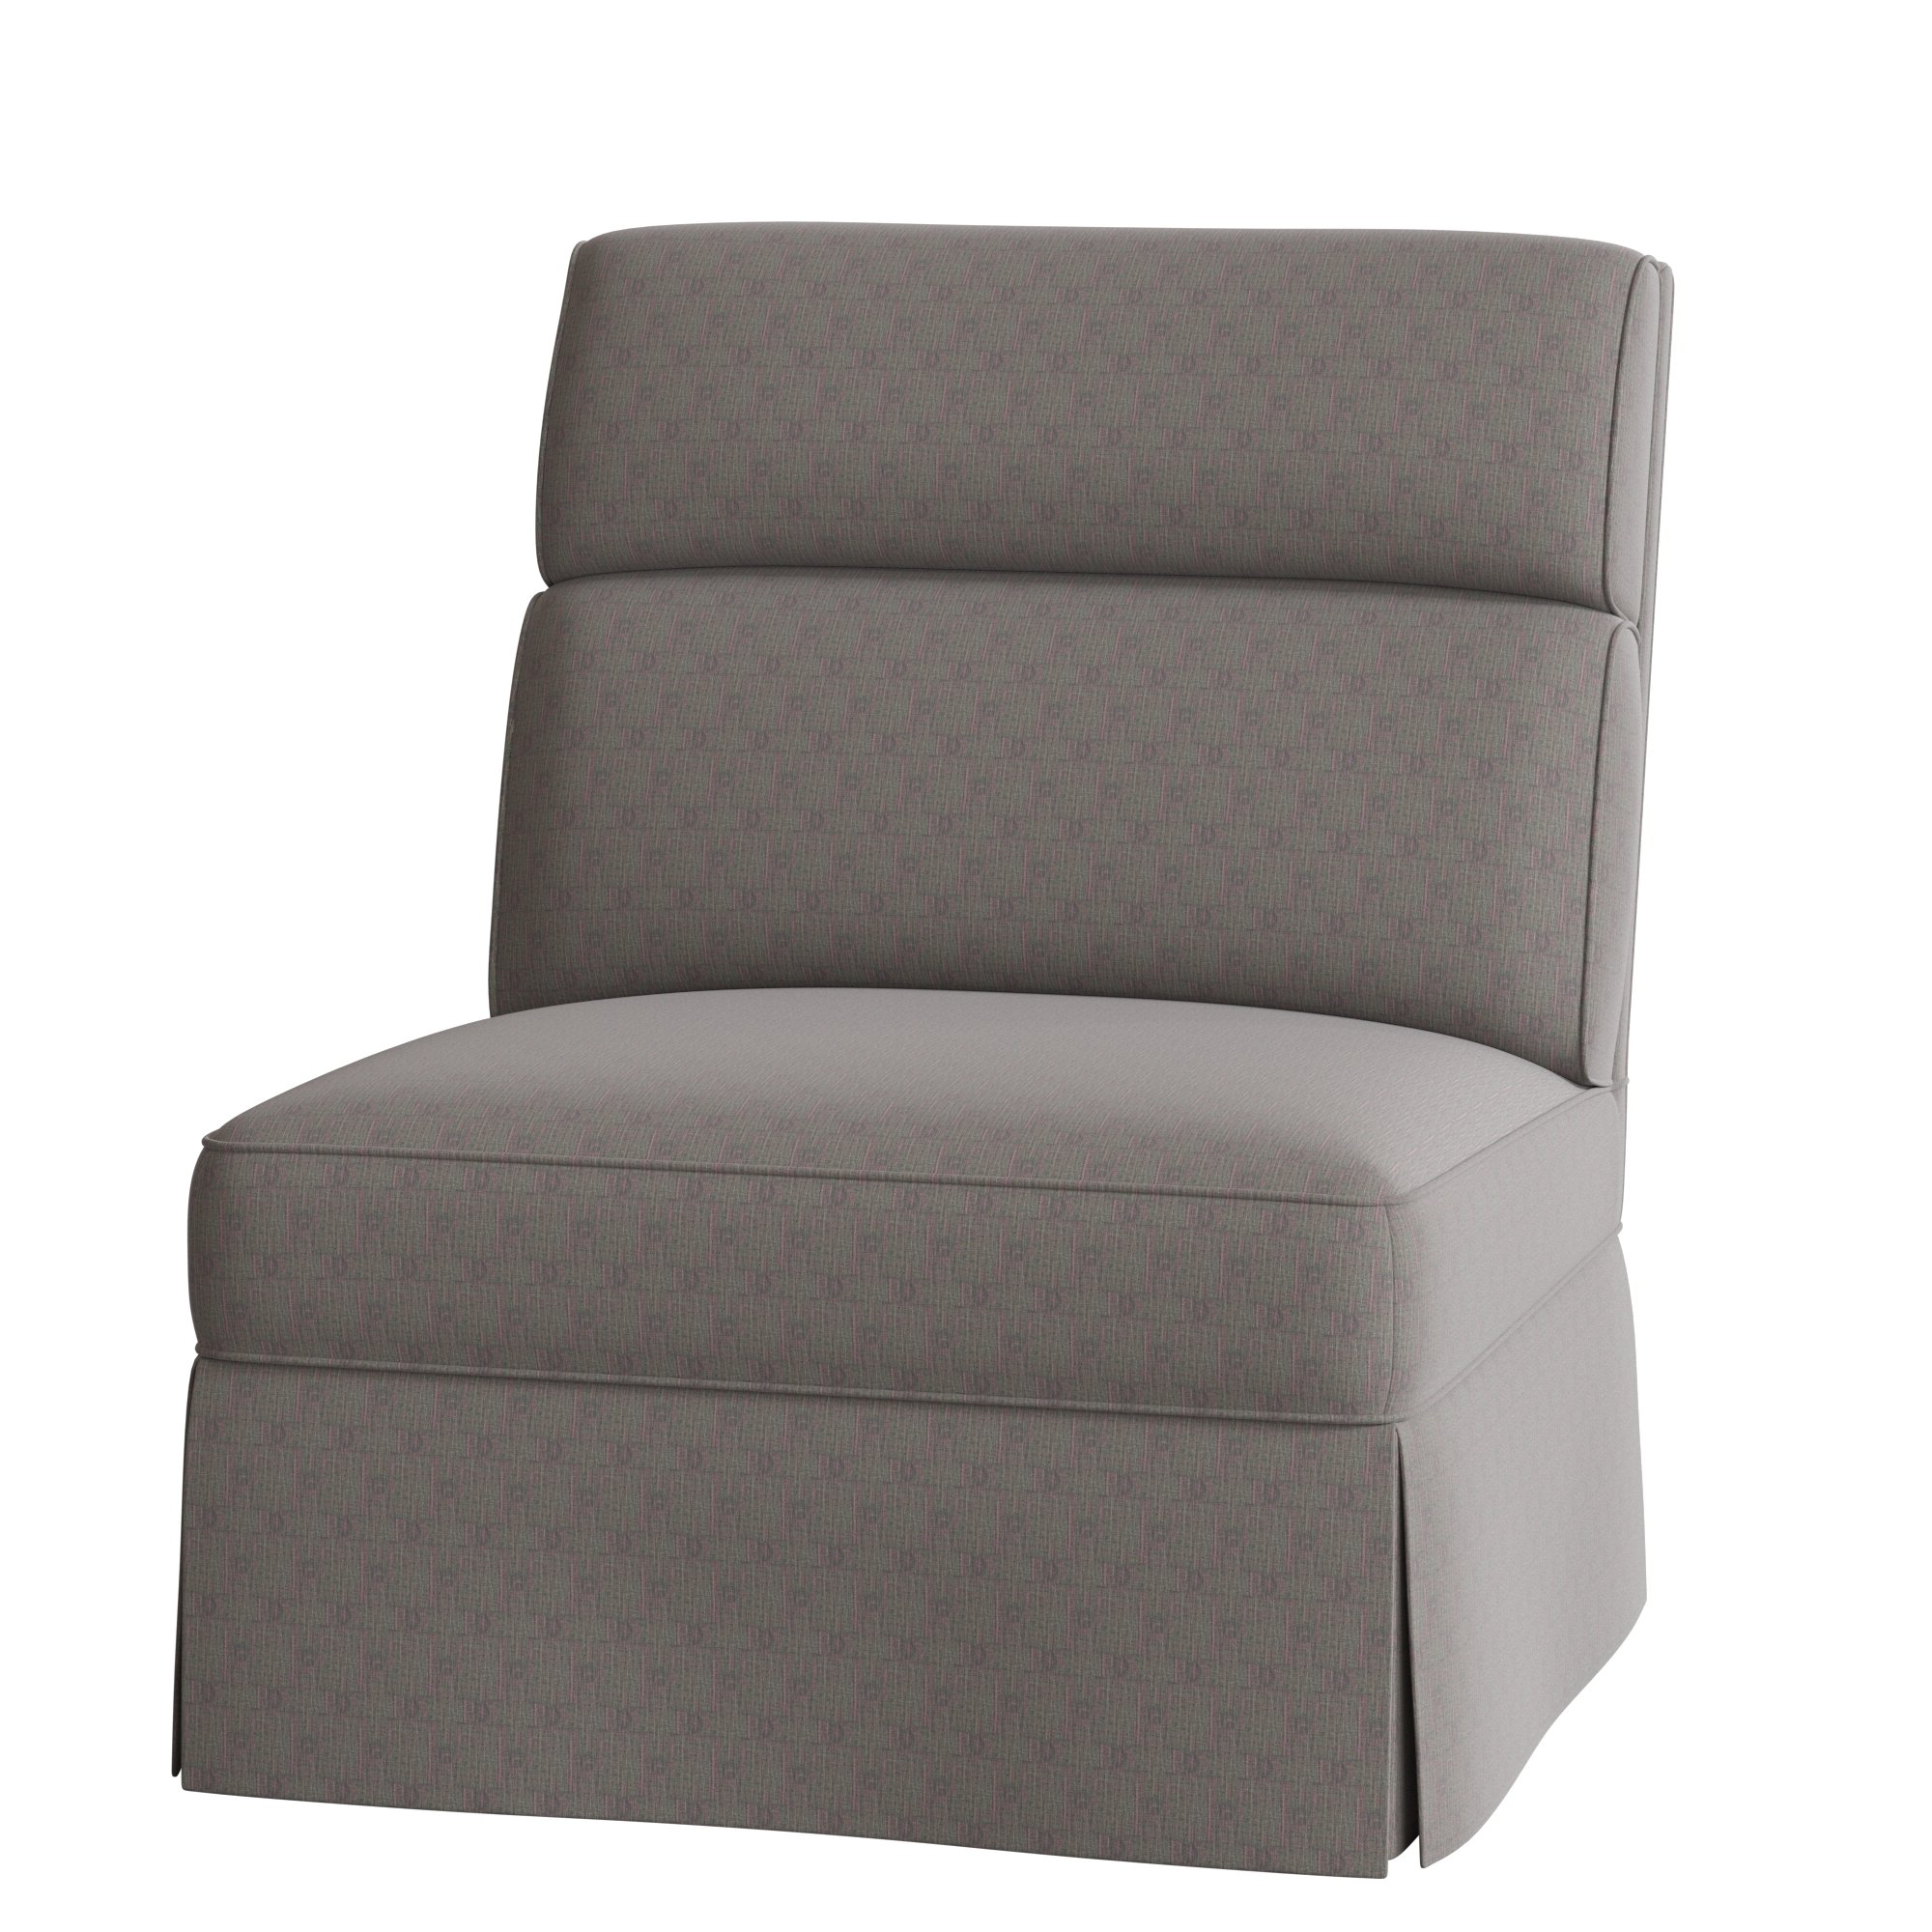 Alexander Cotton Blend Armchairs And Ottoman Within Well Known Nia Slipper Chair (View 16 of 20)